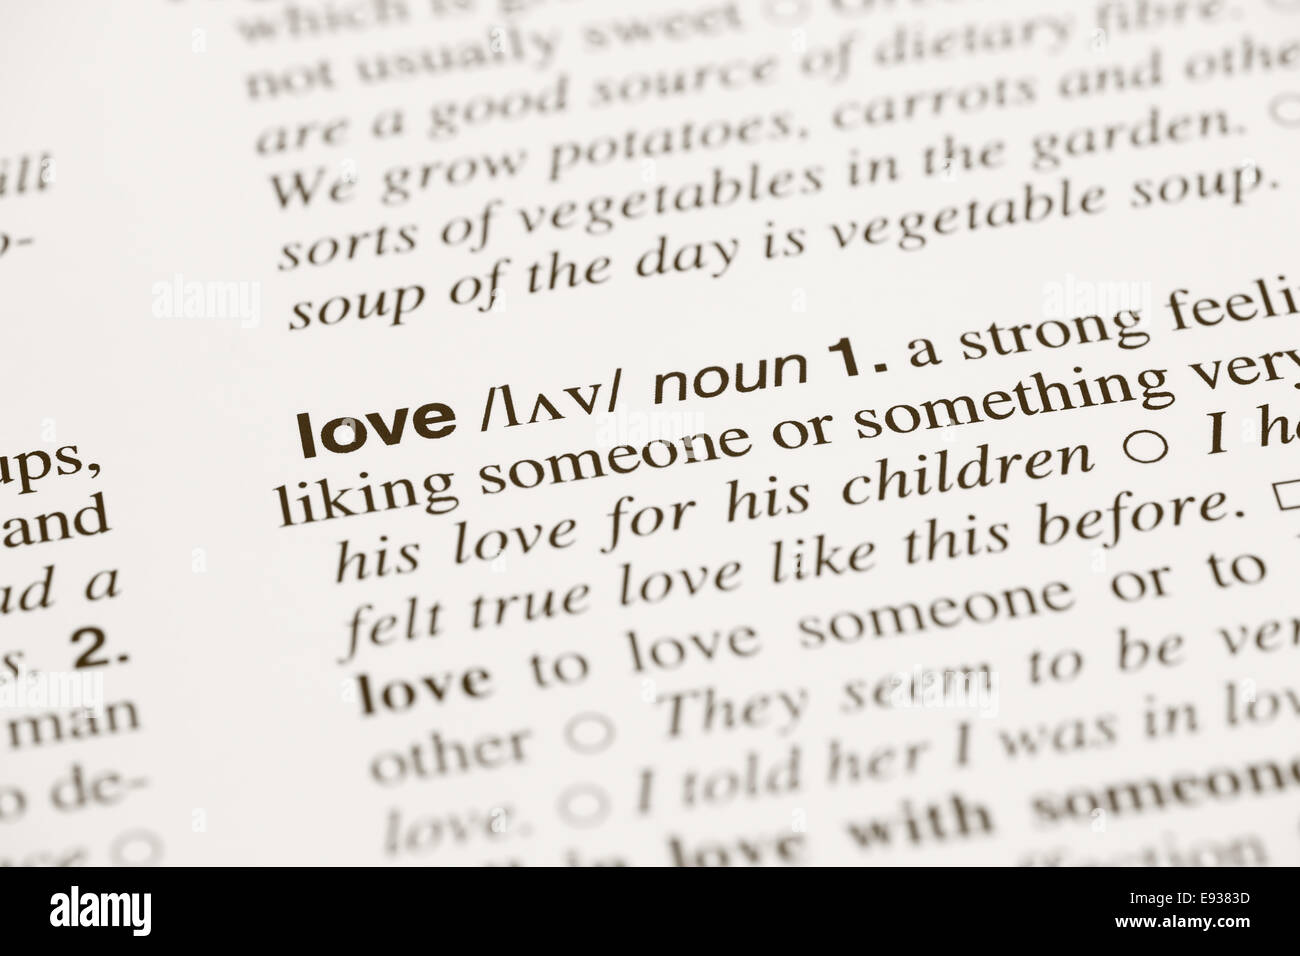 definition of love stock photos & definition of love stock images